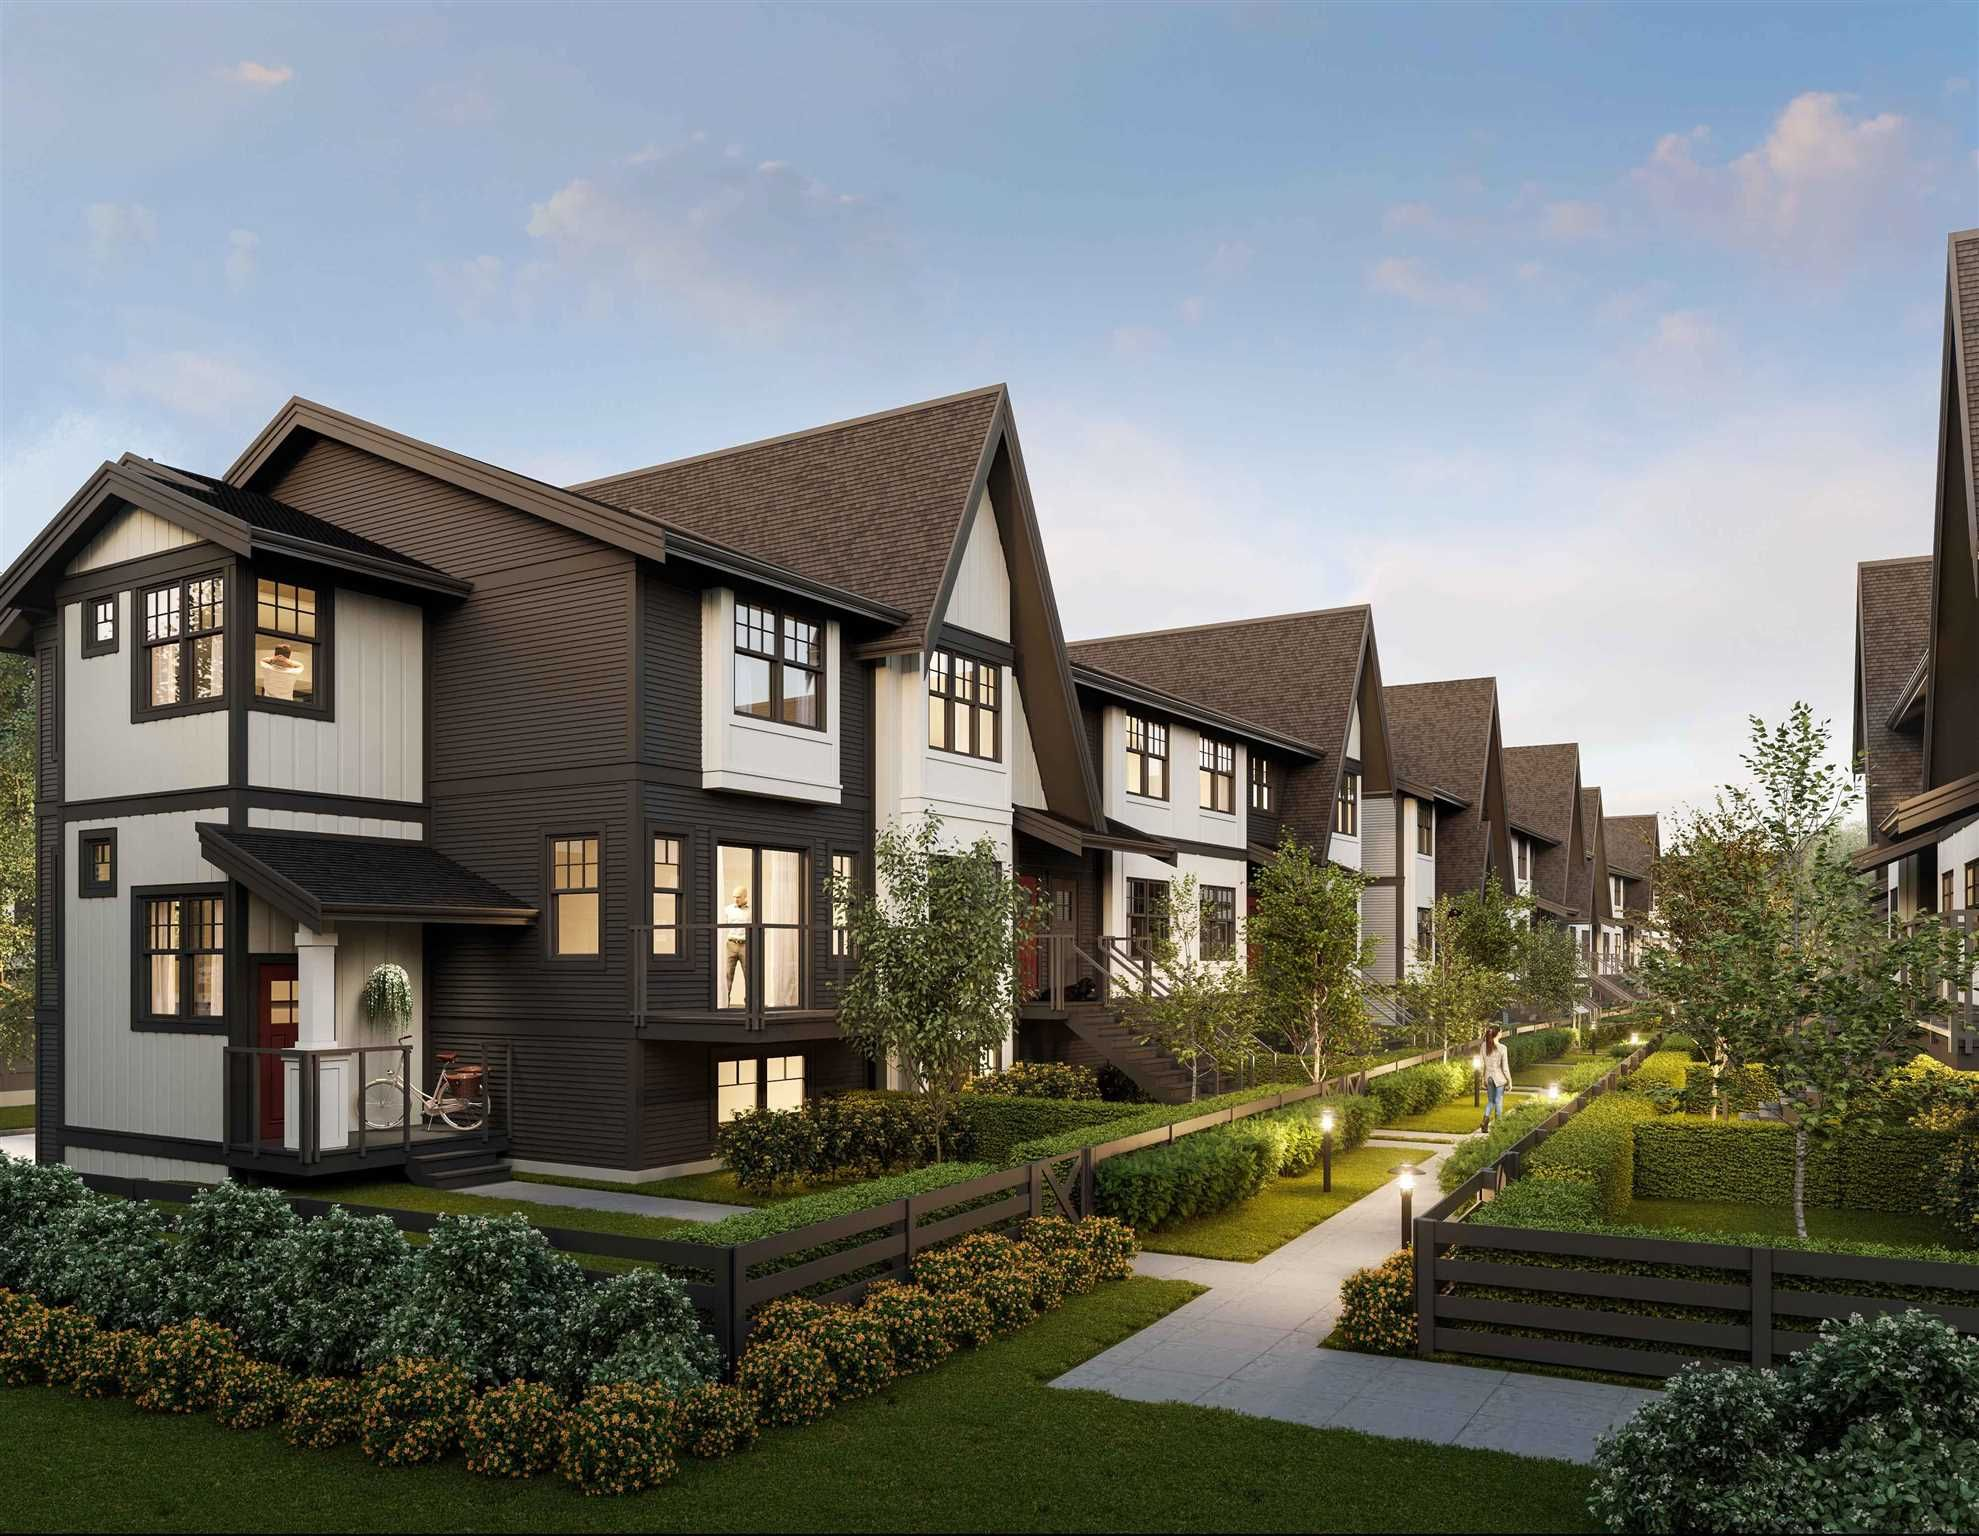 """Main Photo: 192 19451 SUTTON Avenue in Pitt Meadows: South Meadows Townhouse for sale in """"NATURE'S WALK"""" : MLS®# R2606717"""